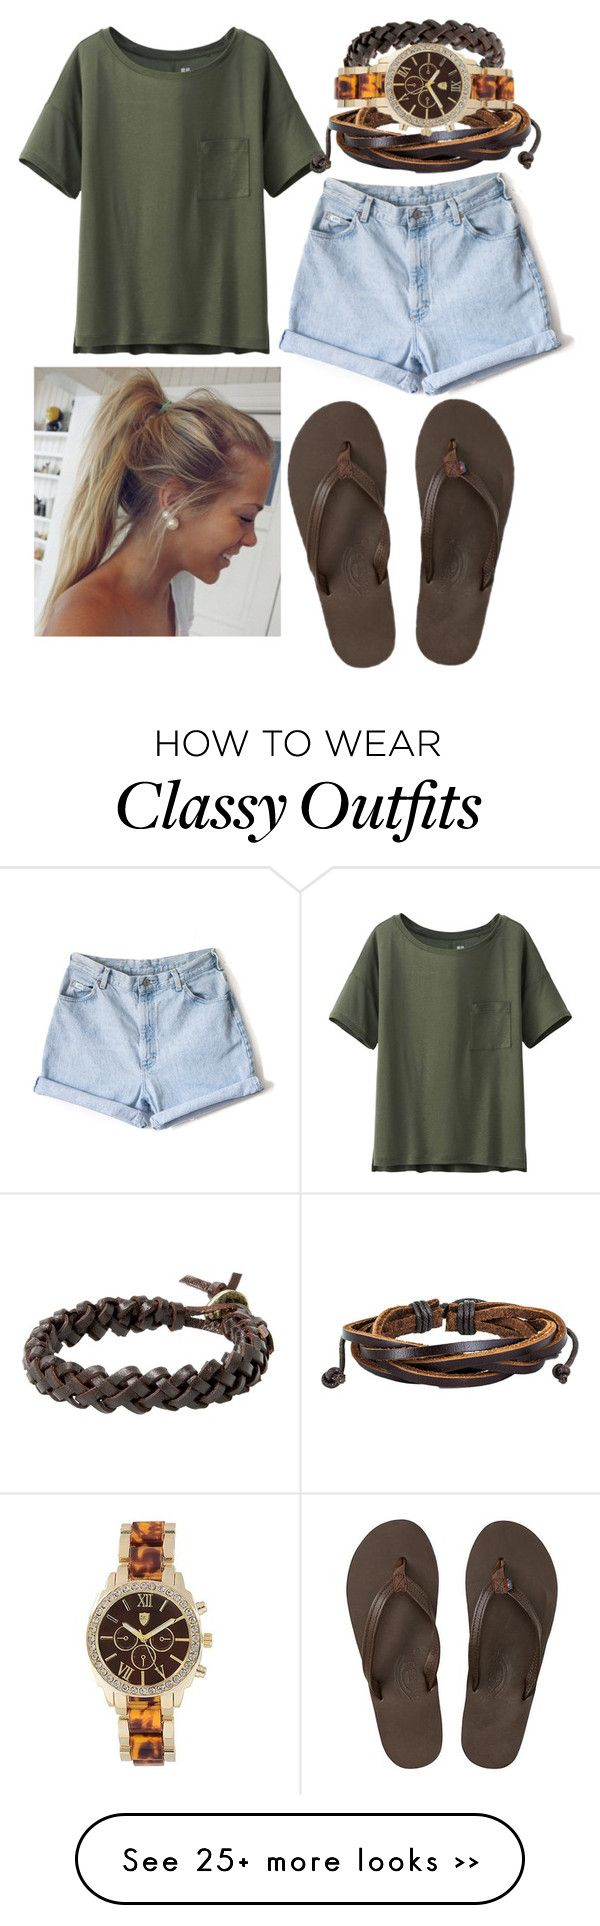 """""""Classy and Chic"""" by lauren-vittorio on Polyvore"""